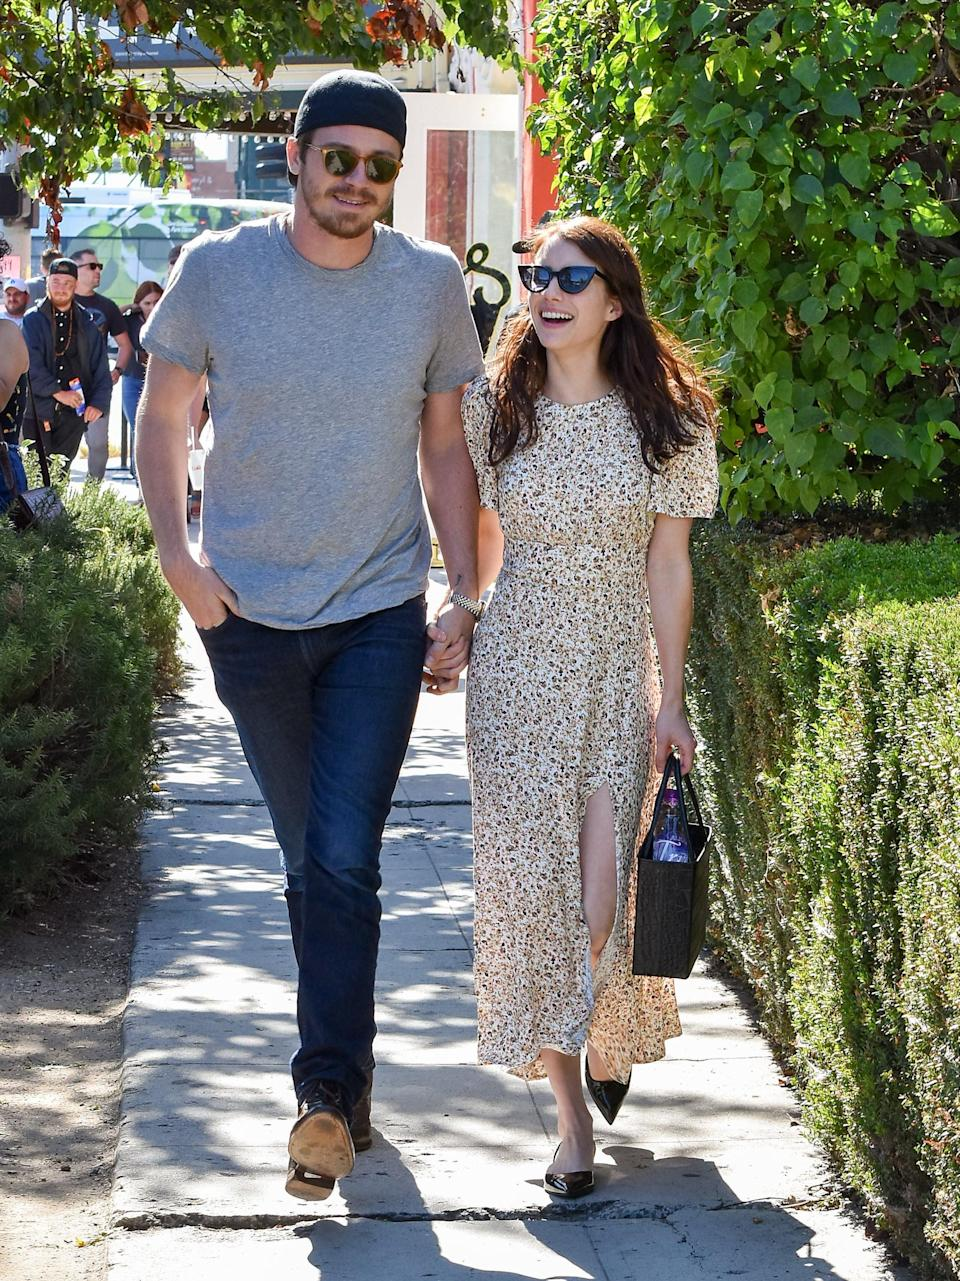 LOS ANGELES, CA - AUGUST 10: Garrett Hedlund and Emma Roberts are seen on August 10, 2019 in Los Angeles, California.  (Photo by BG015/Bauer-Griffin/GC Images)